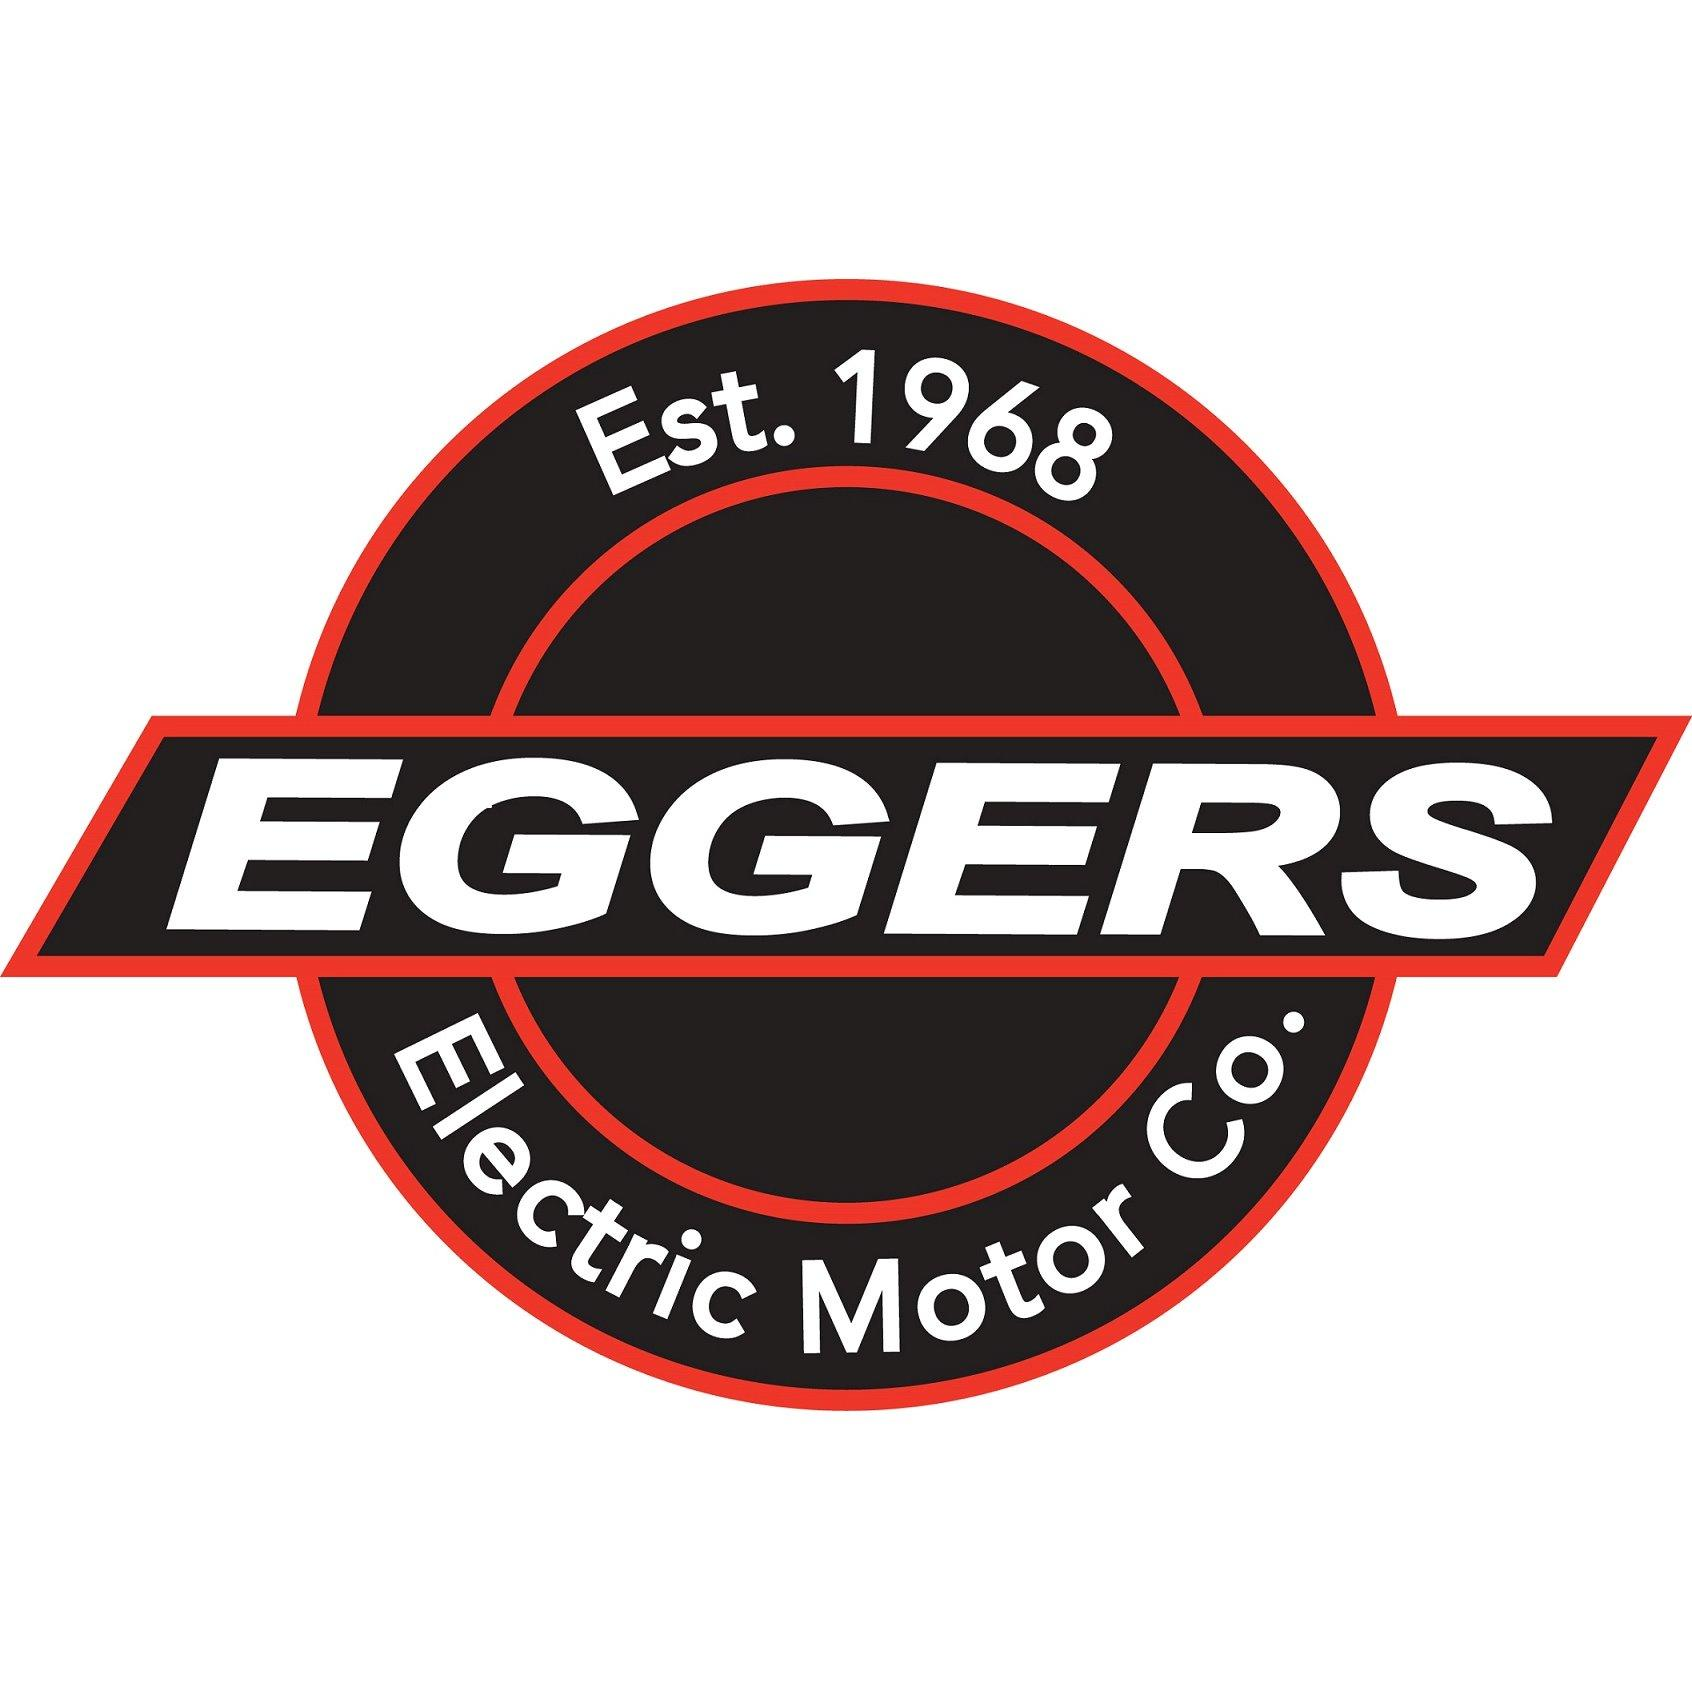 Eggers Electric Motor Co image 0